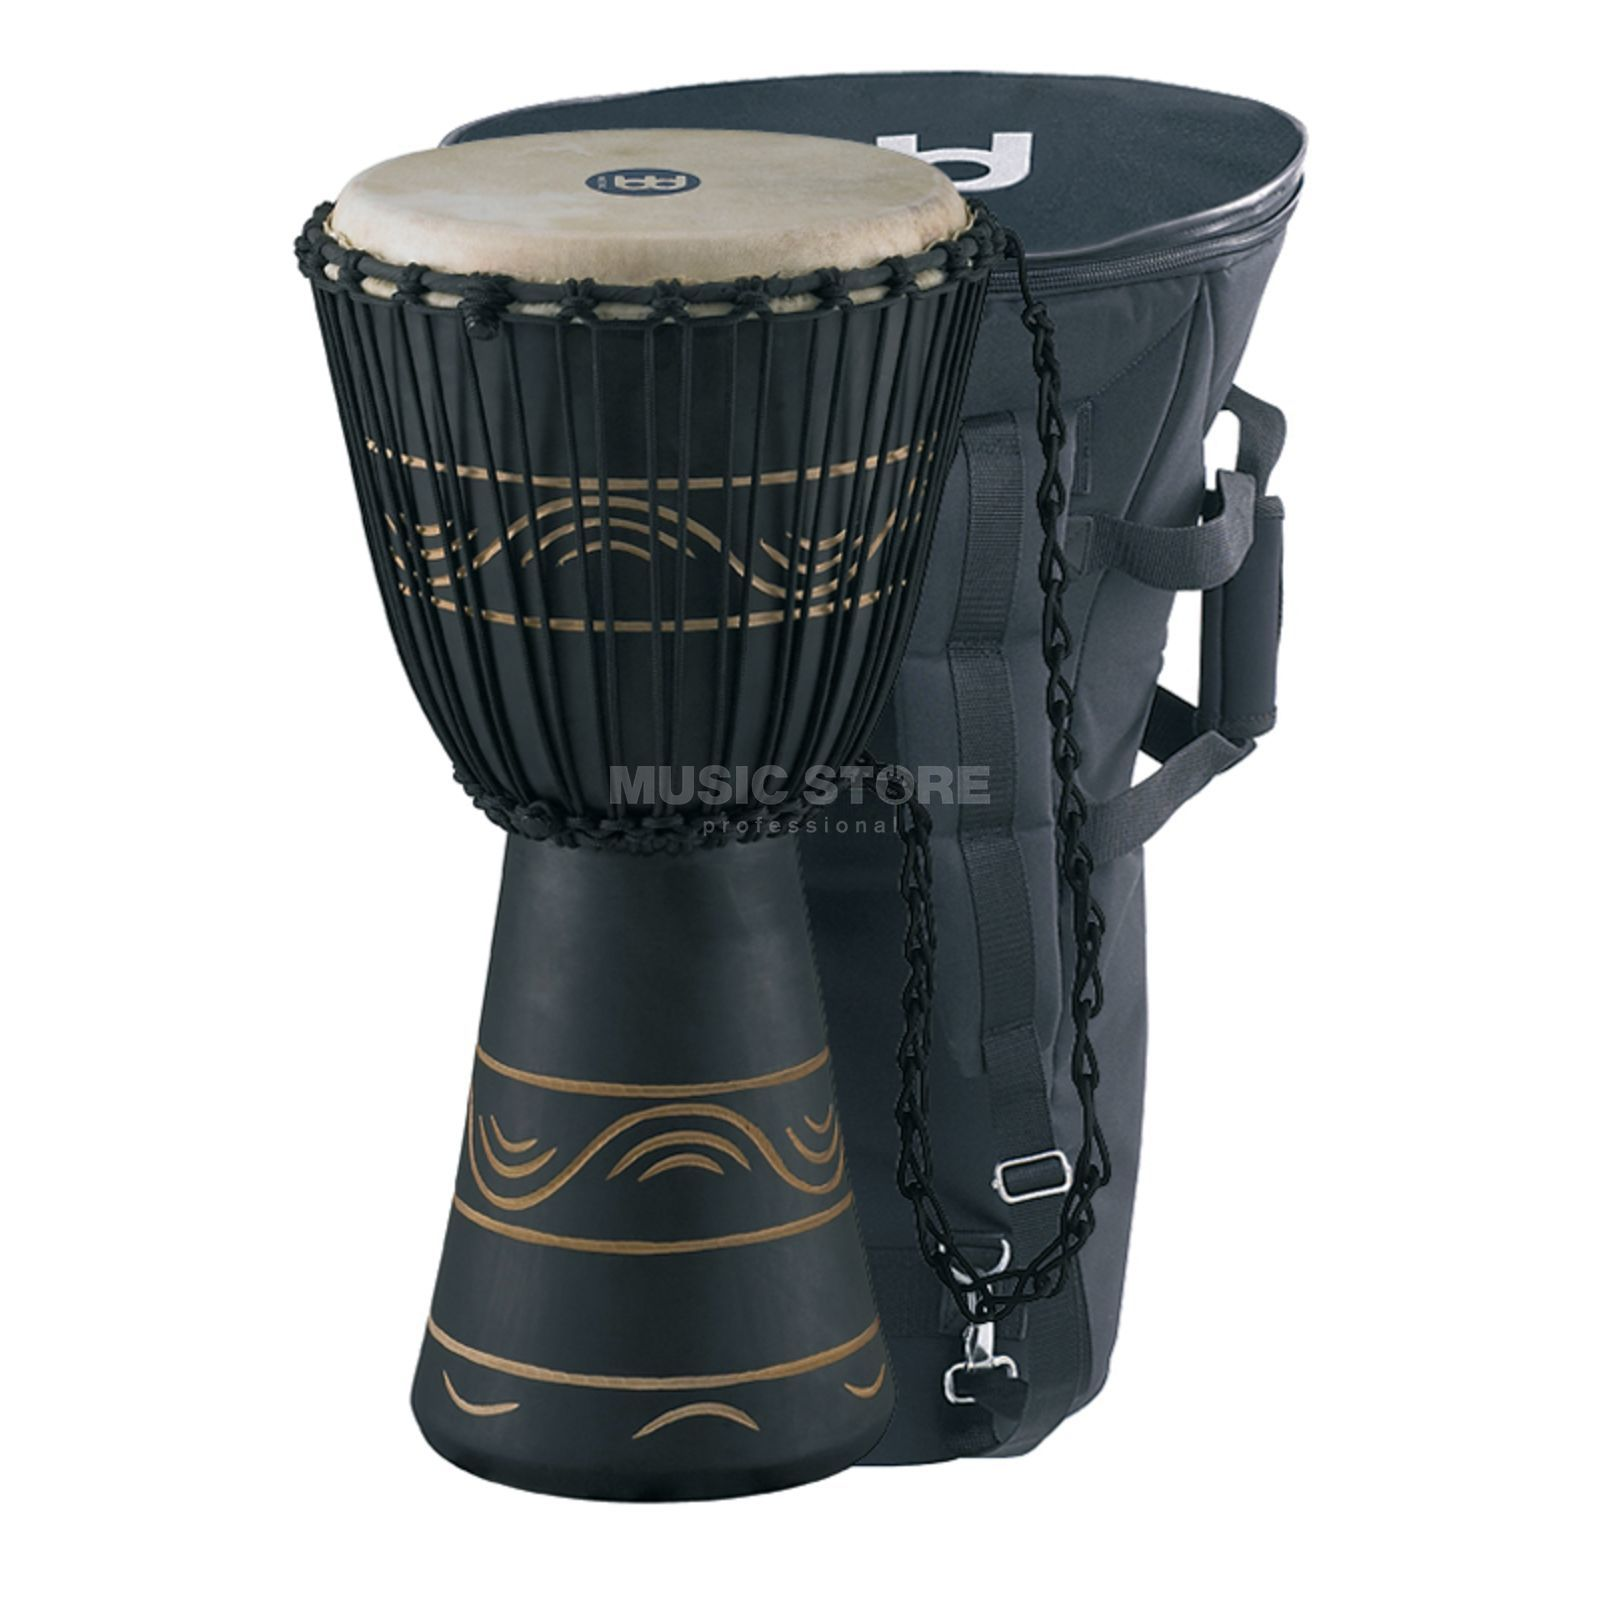 Meinl Djembe ADJ4-M + Bag Moon Rhythm Series Product Image